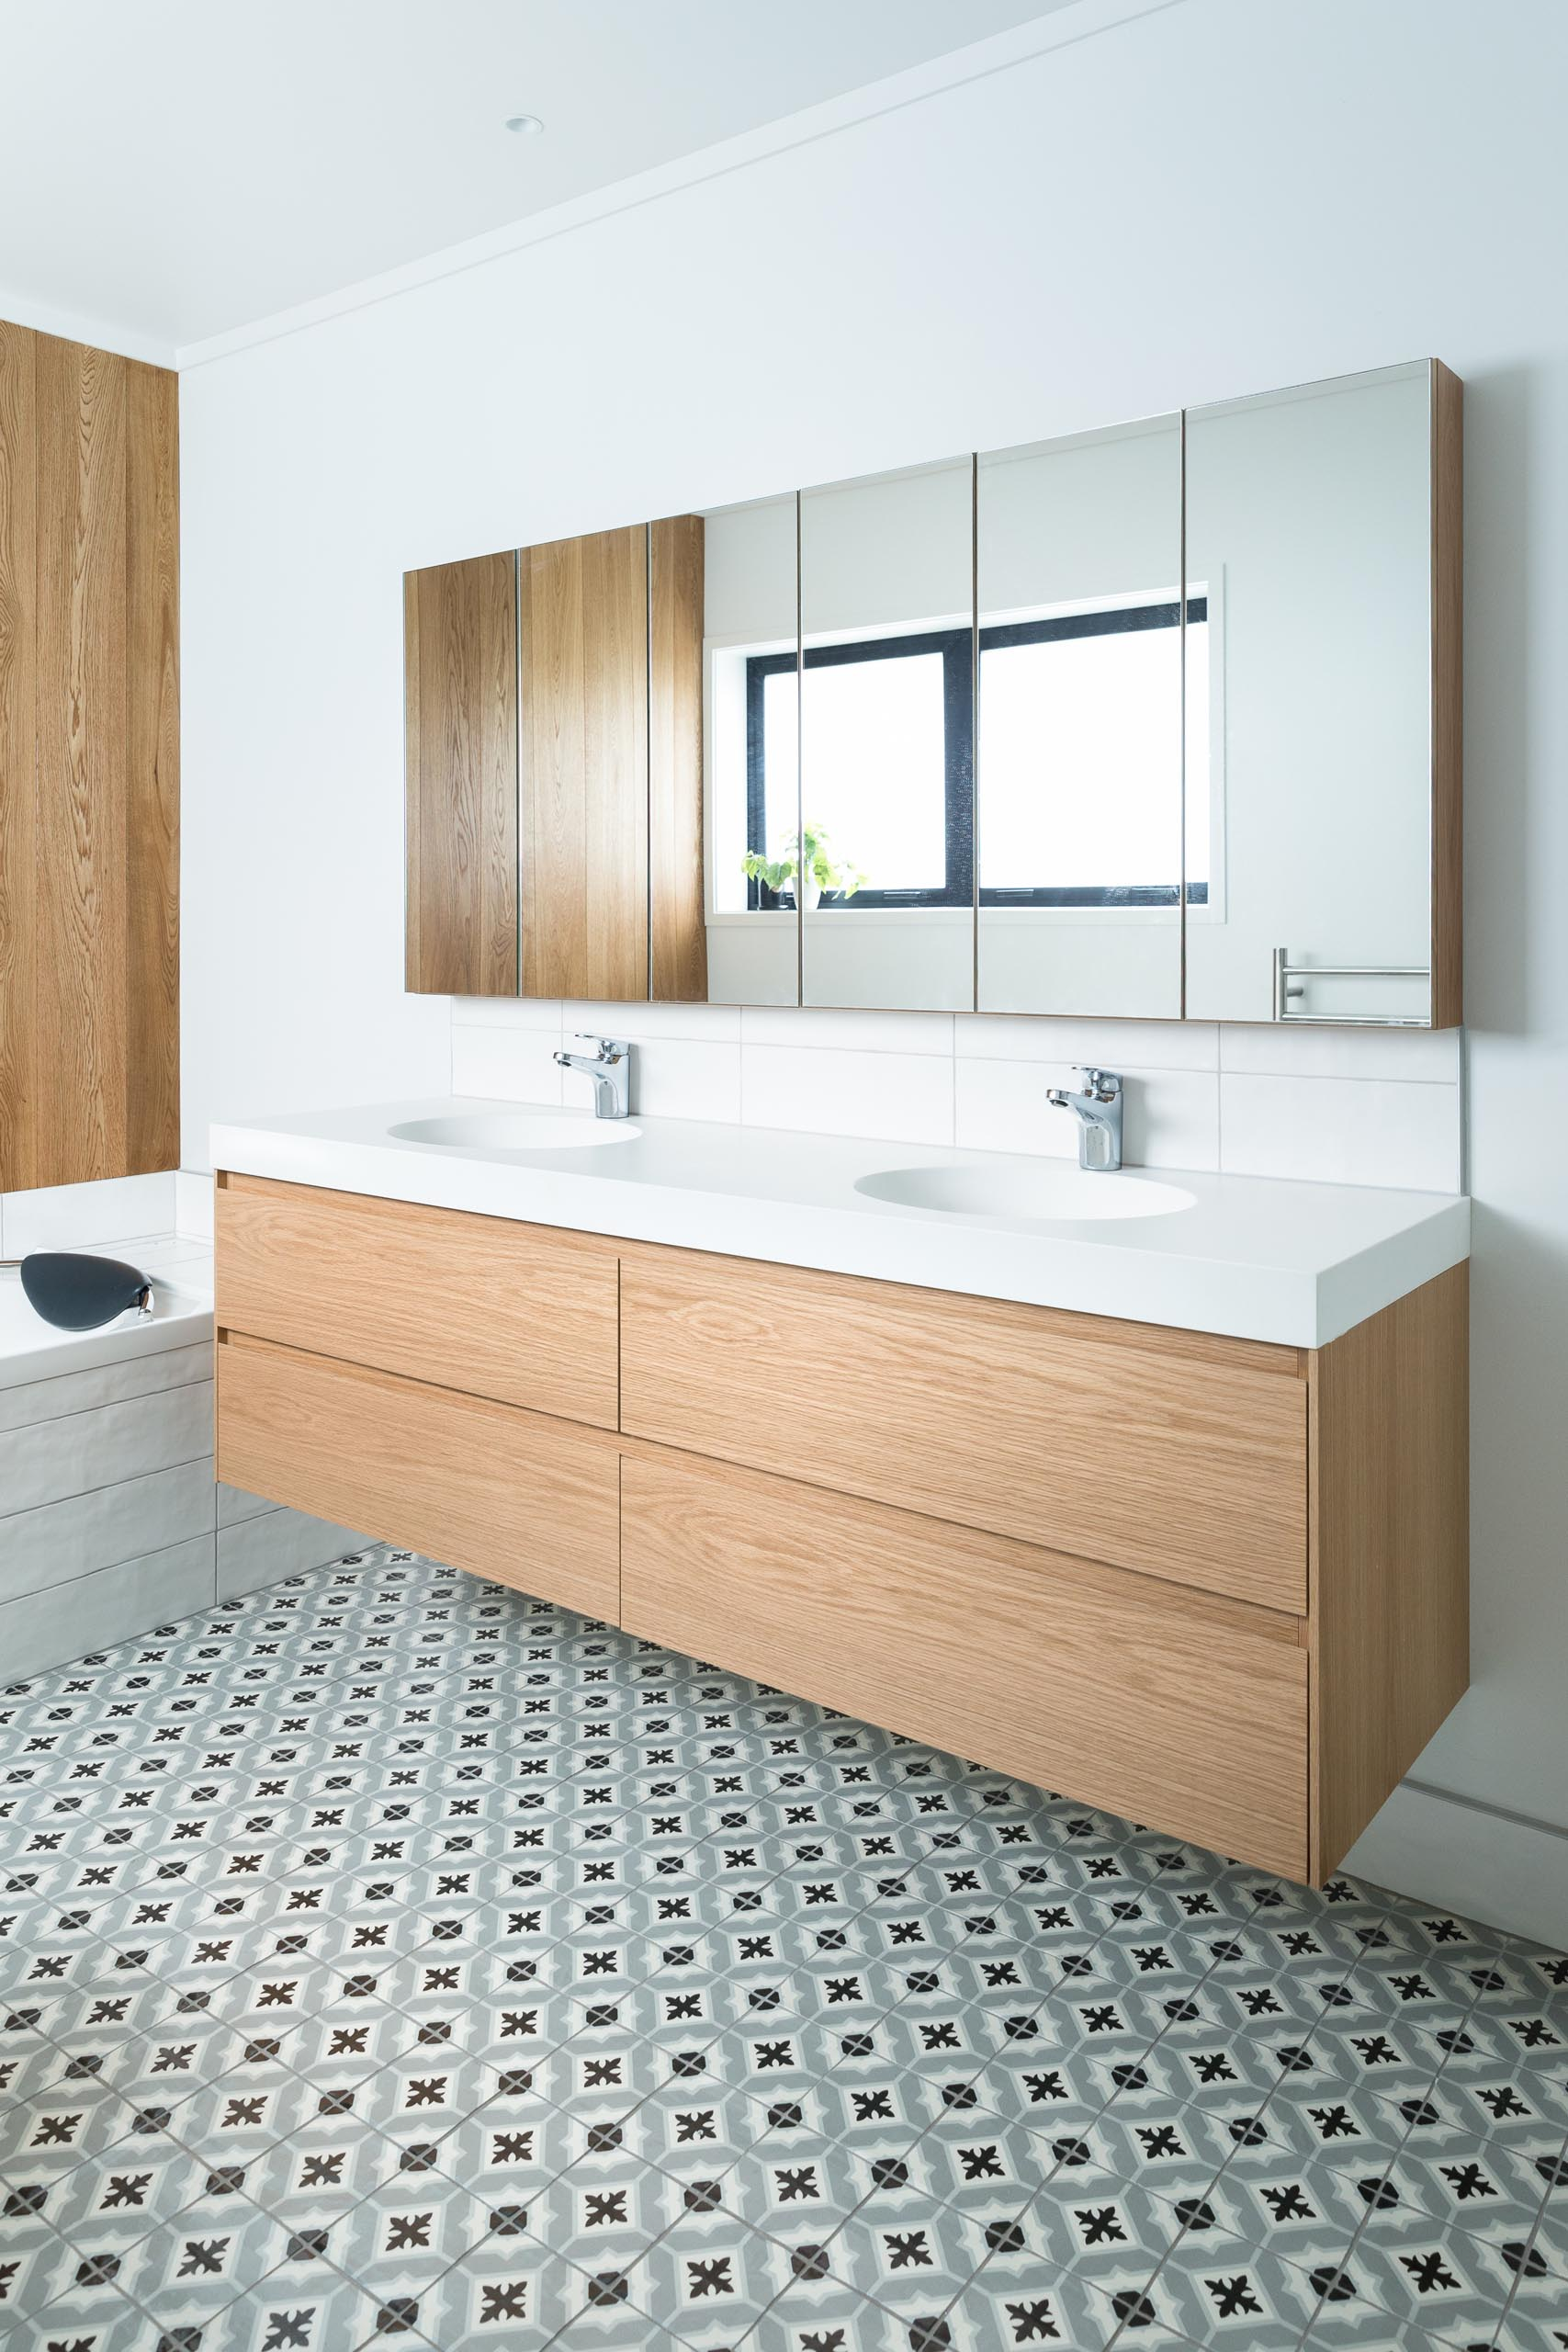 This modern bathroom features a double sink wood vanity, patterned tile flooring, a built-in bathtub, and a wood accent wall.